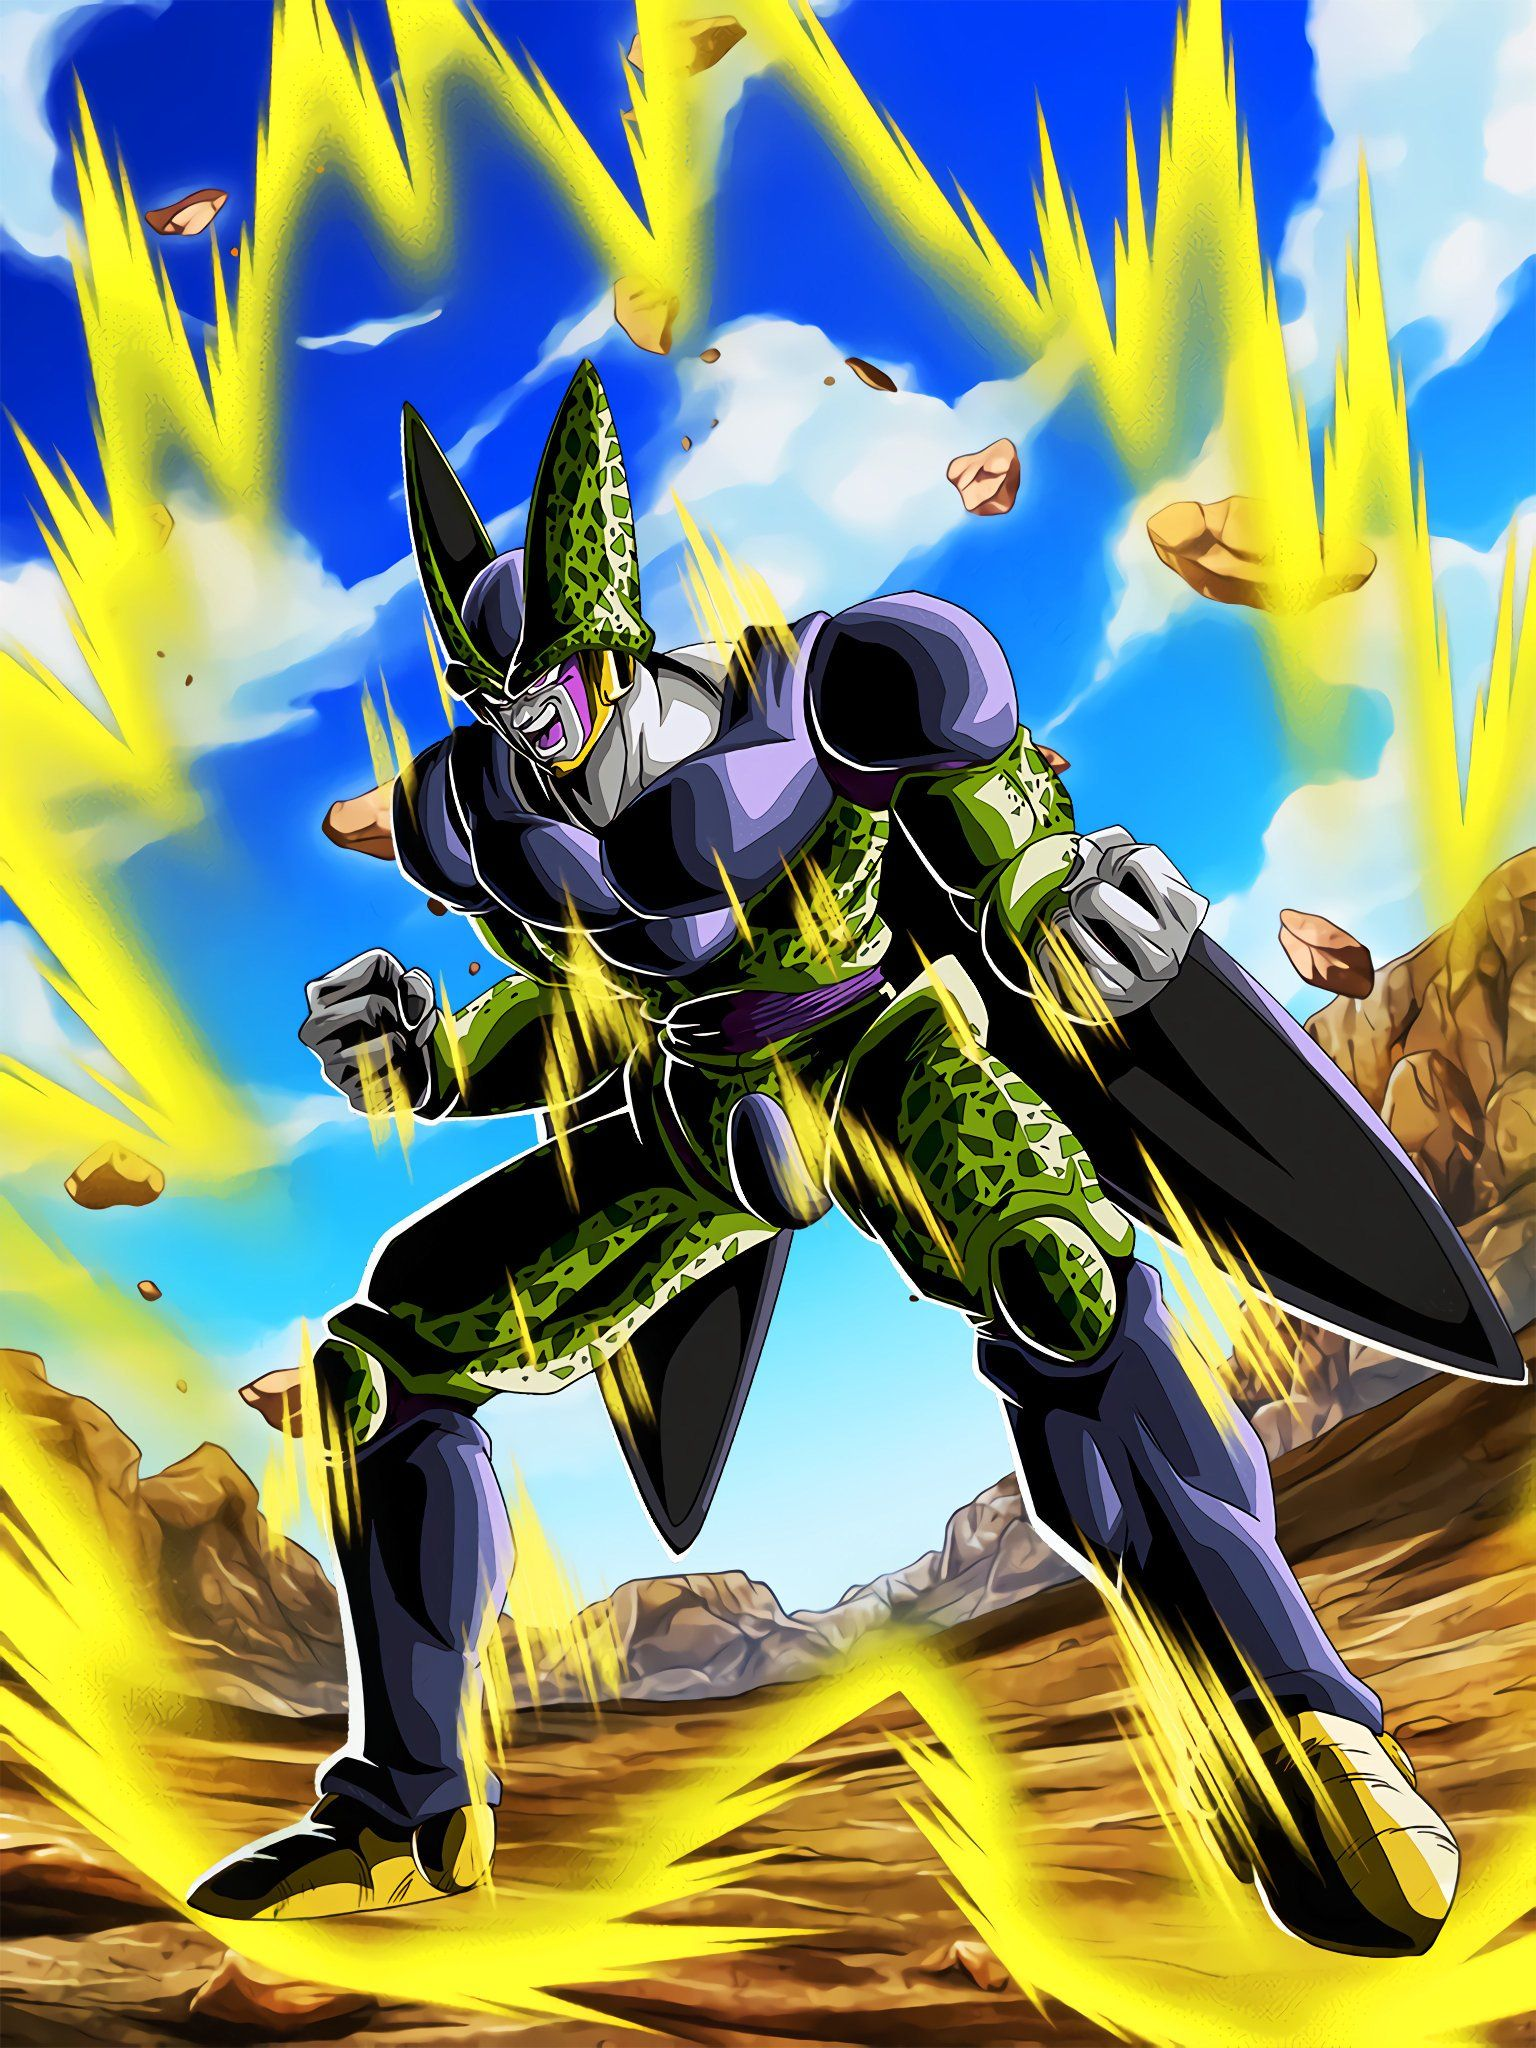 Pin by Coolgamer480 on Dokkan Battle (With images) Anime